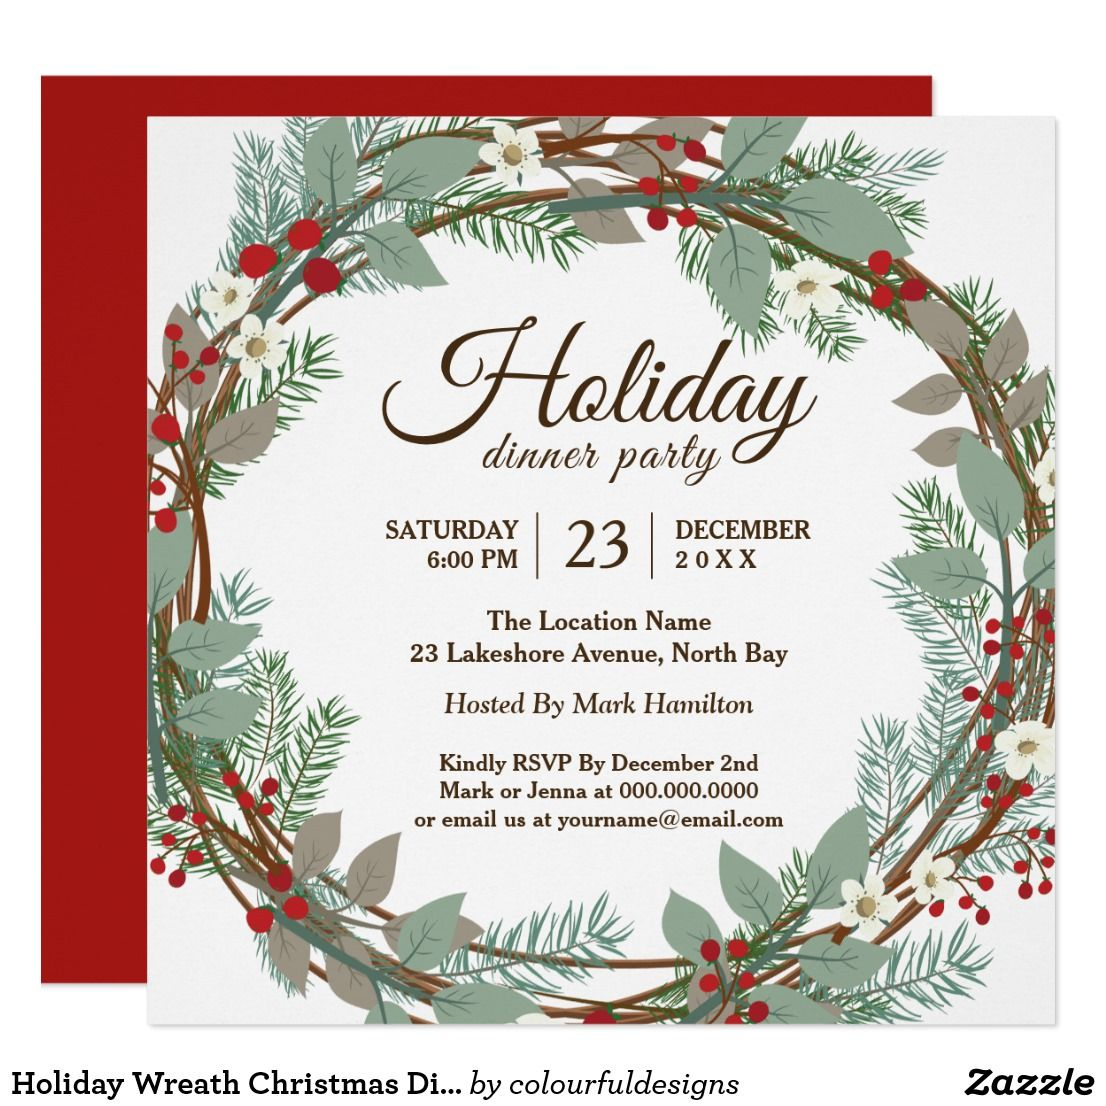 Holiday Wreath Christmas Dinner Party Invitation | Dinner party ...